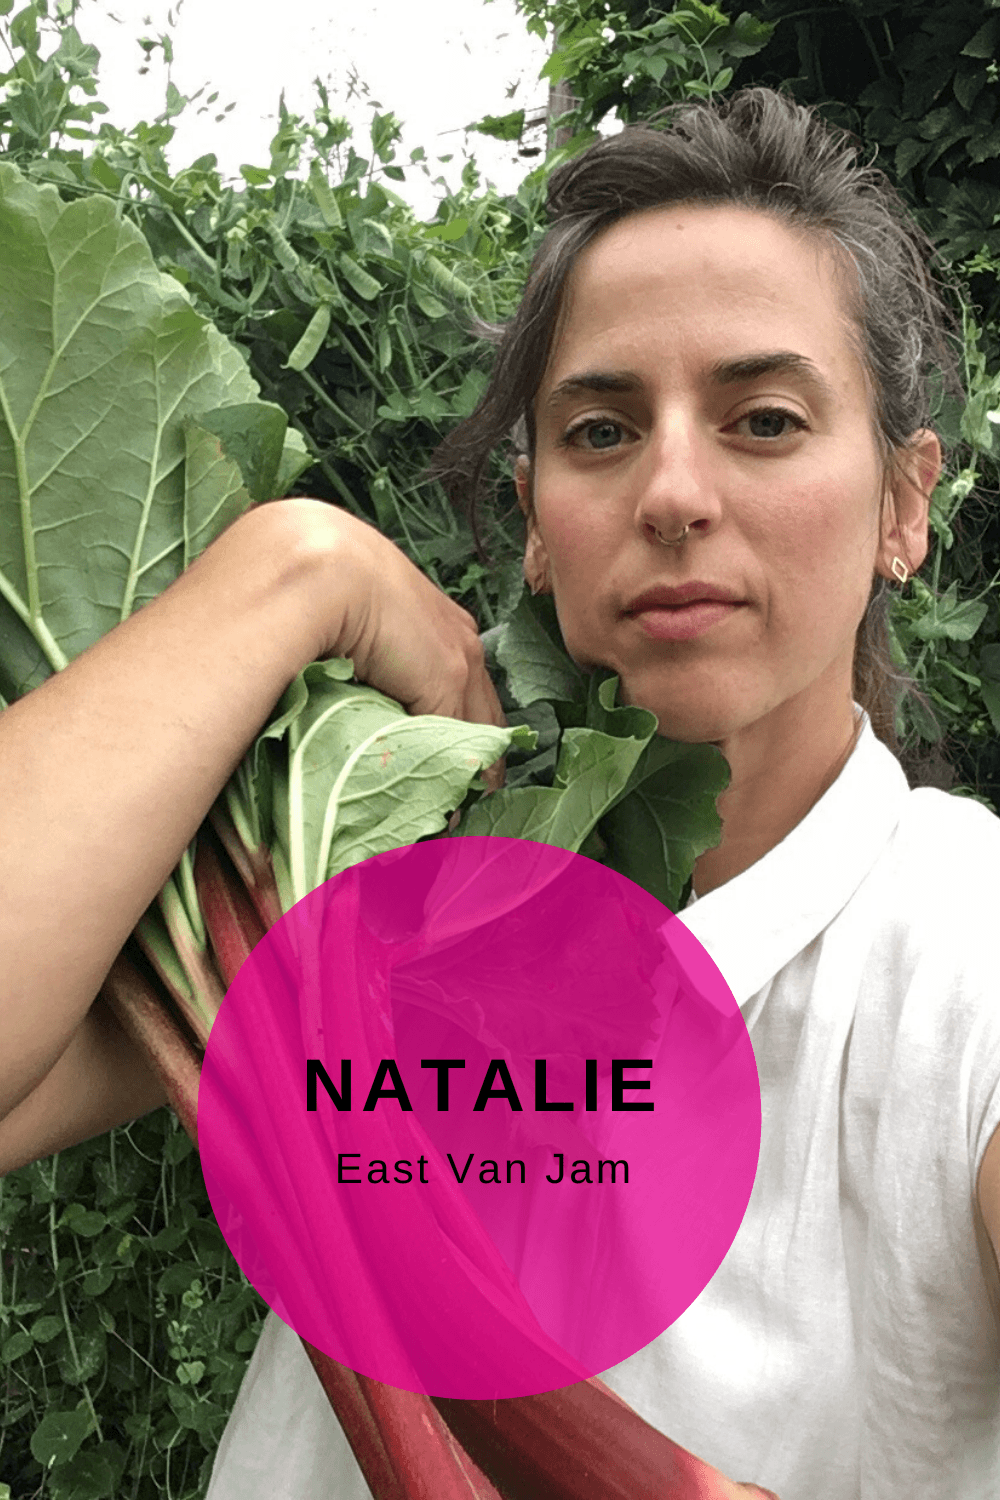 Natalie from east van jam